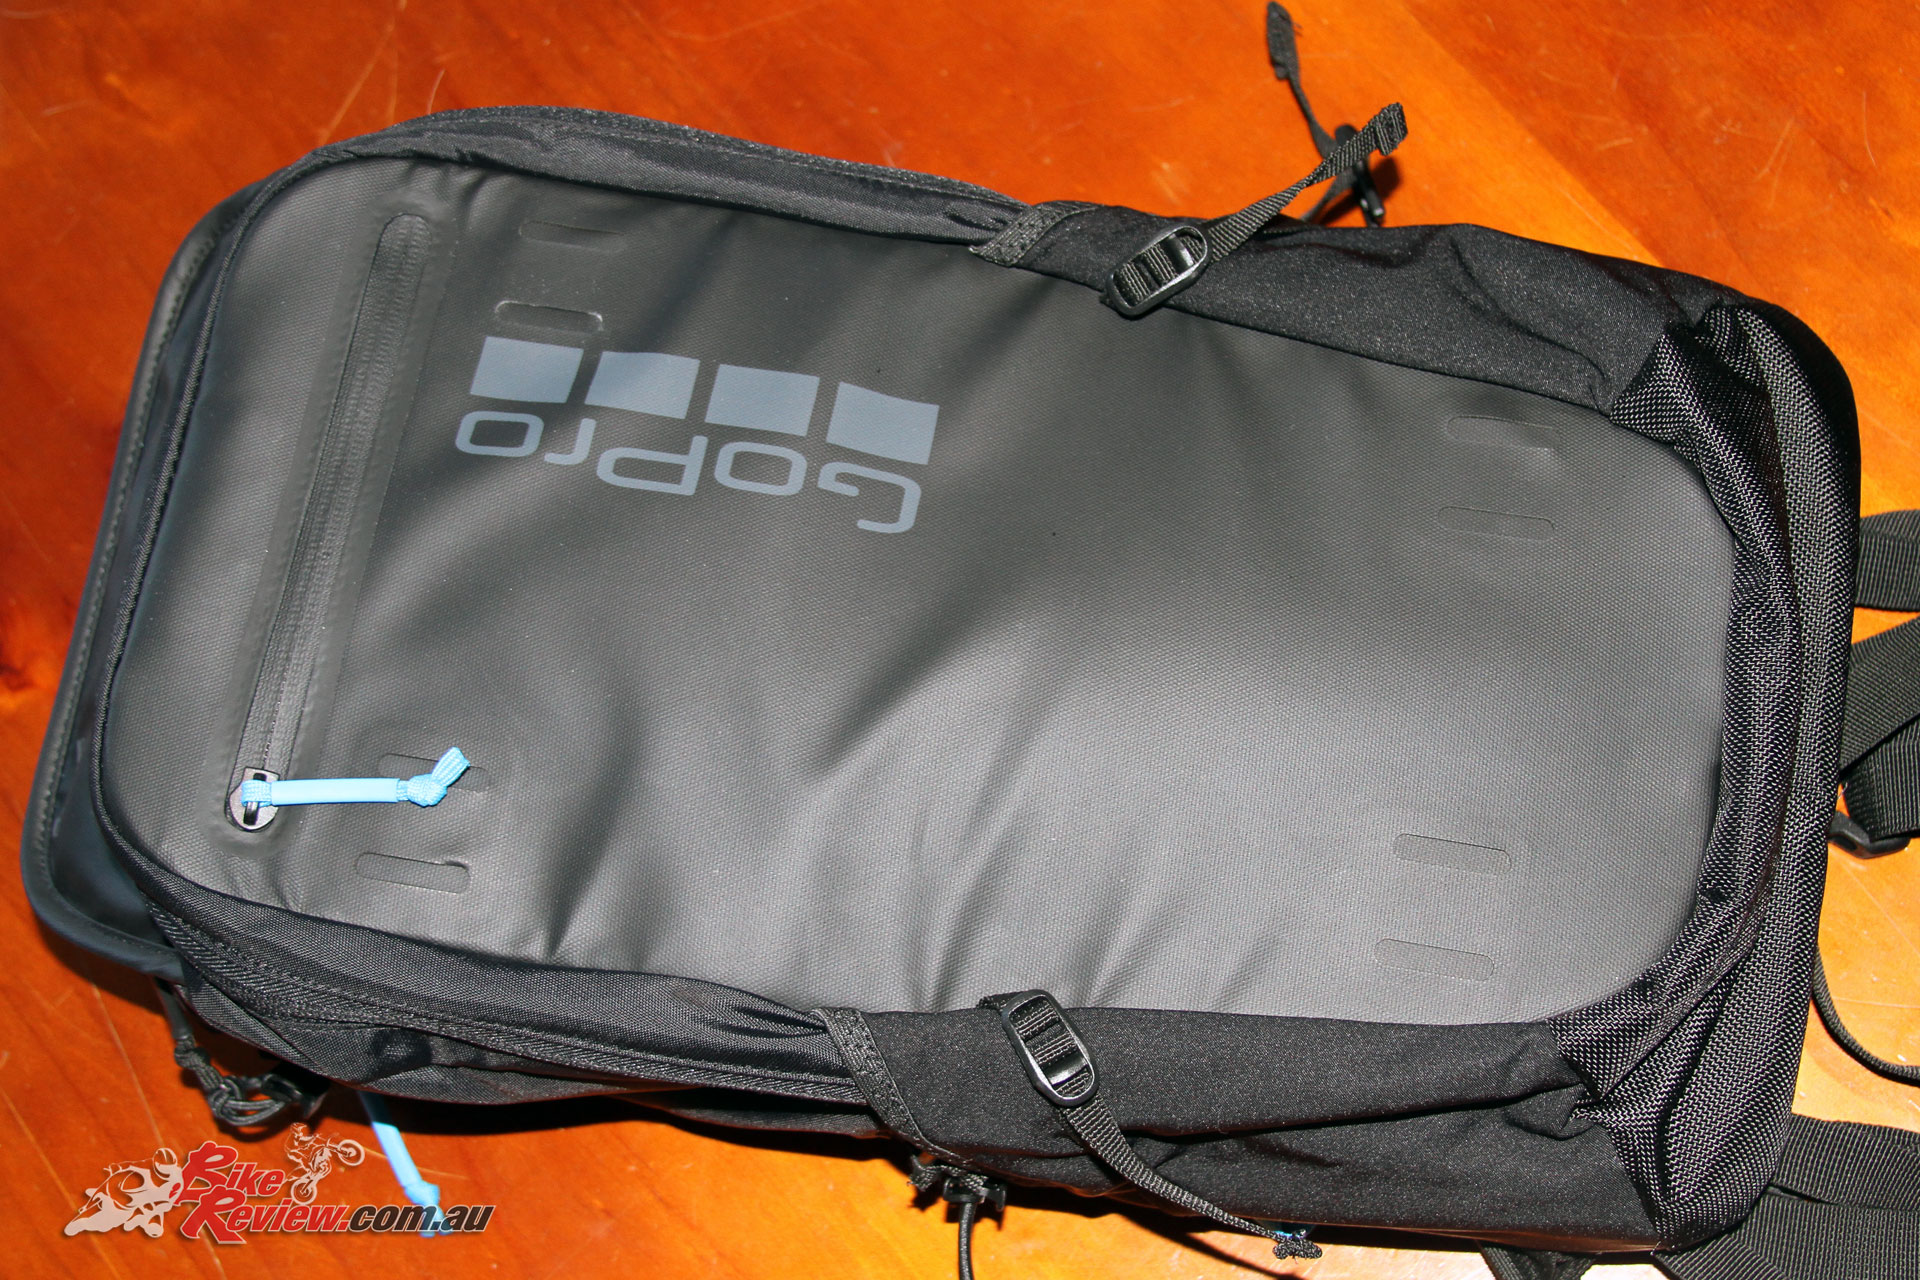 A seriously cool GoPro bag also offers heaps of features, from a standard mount on one of the straps, to an easy access top pocket and rear pocket for a small laptop.